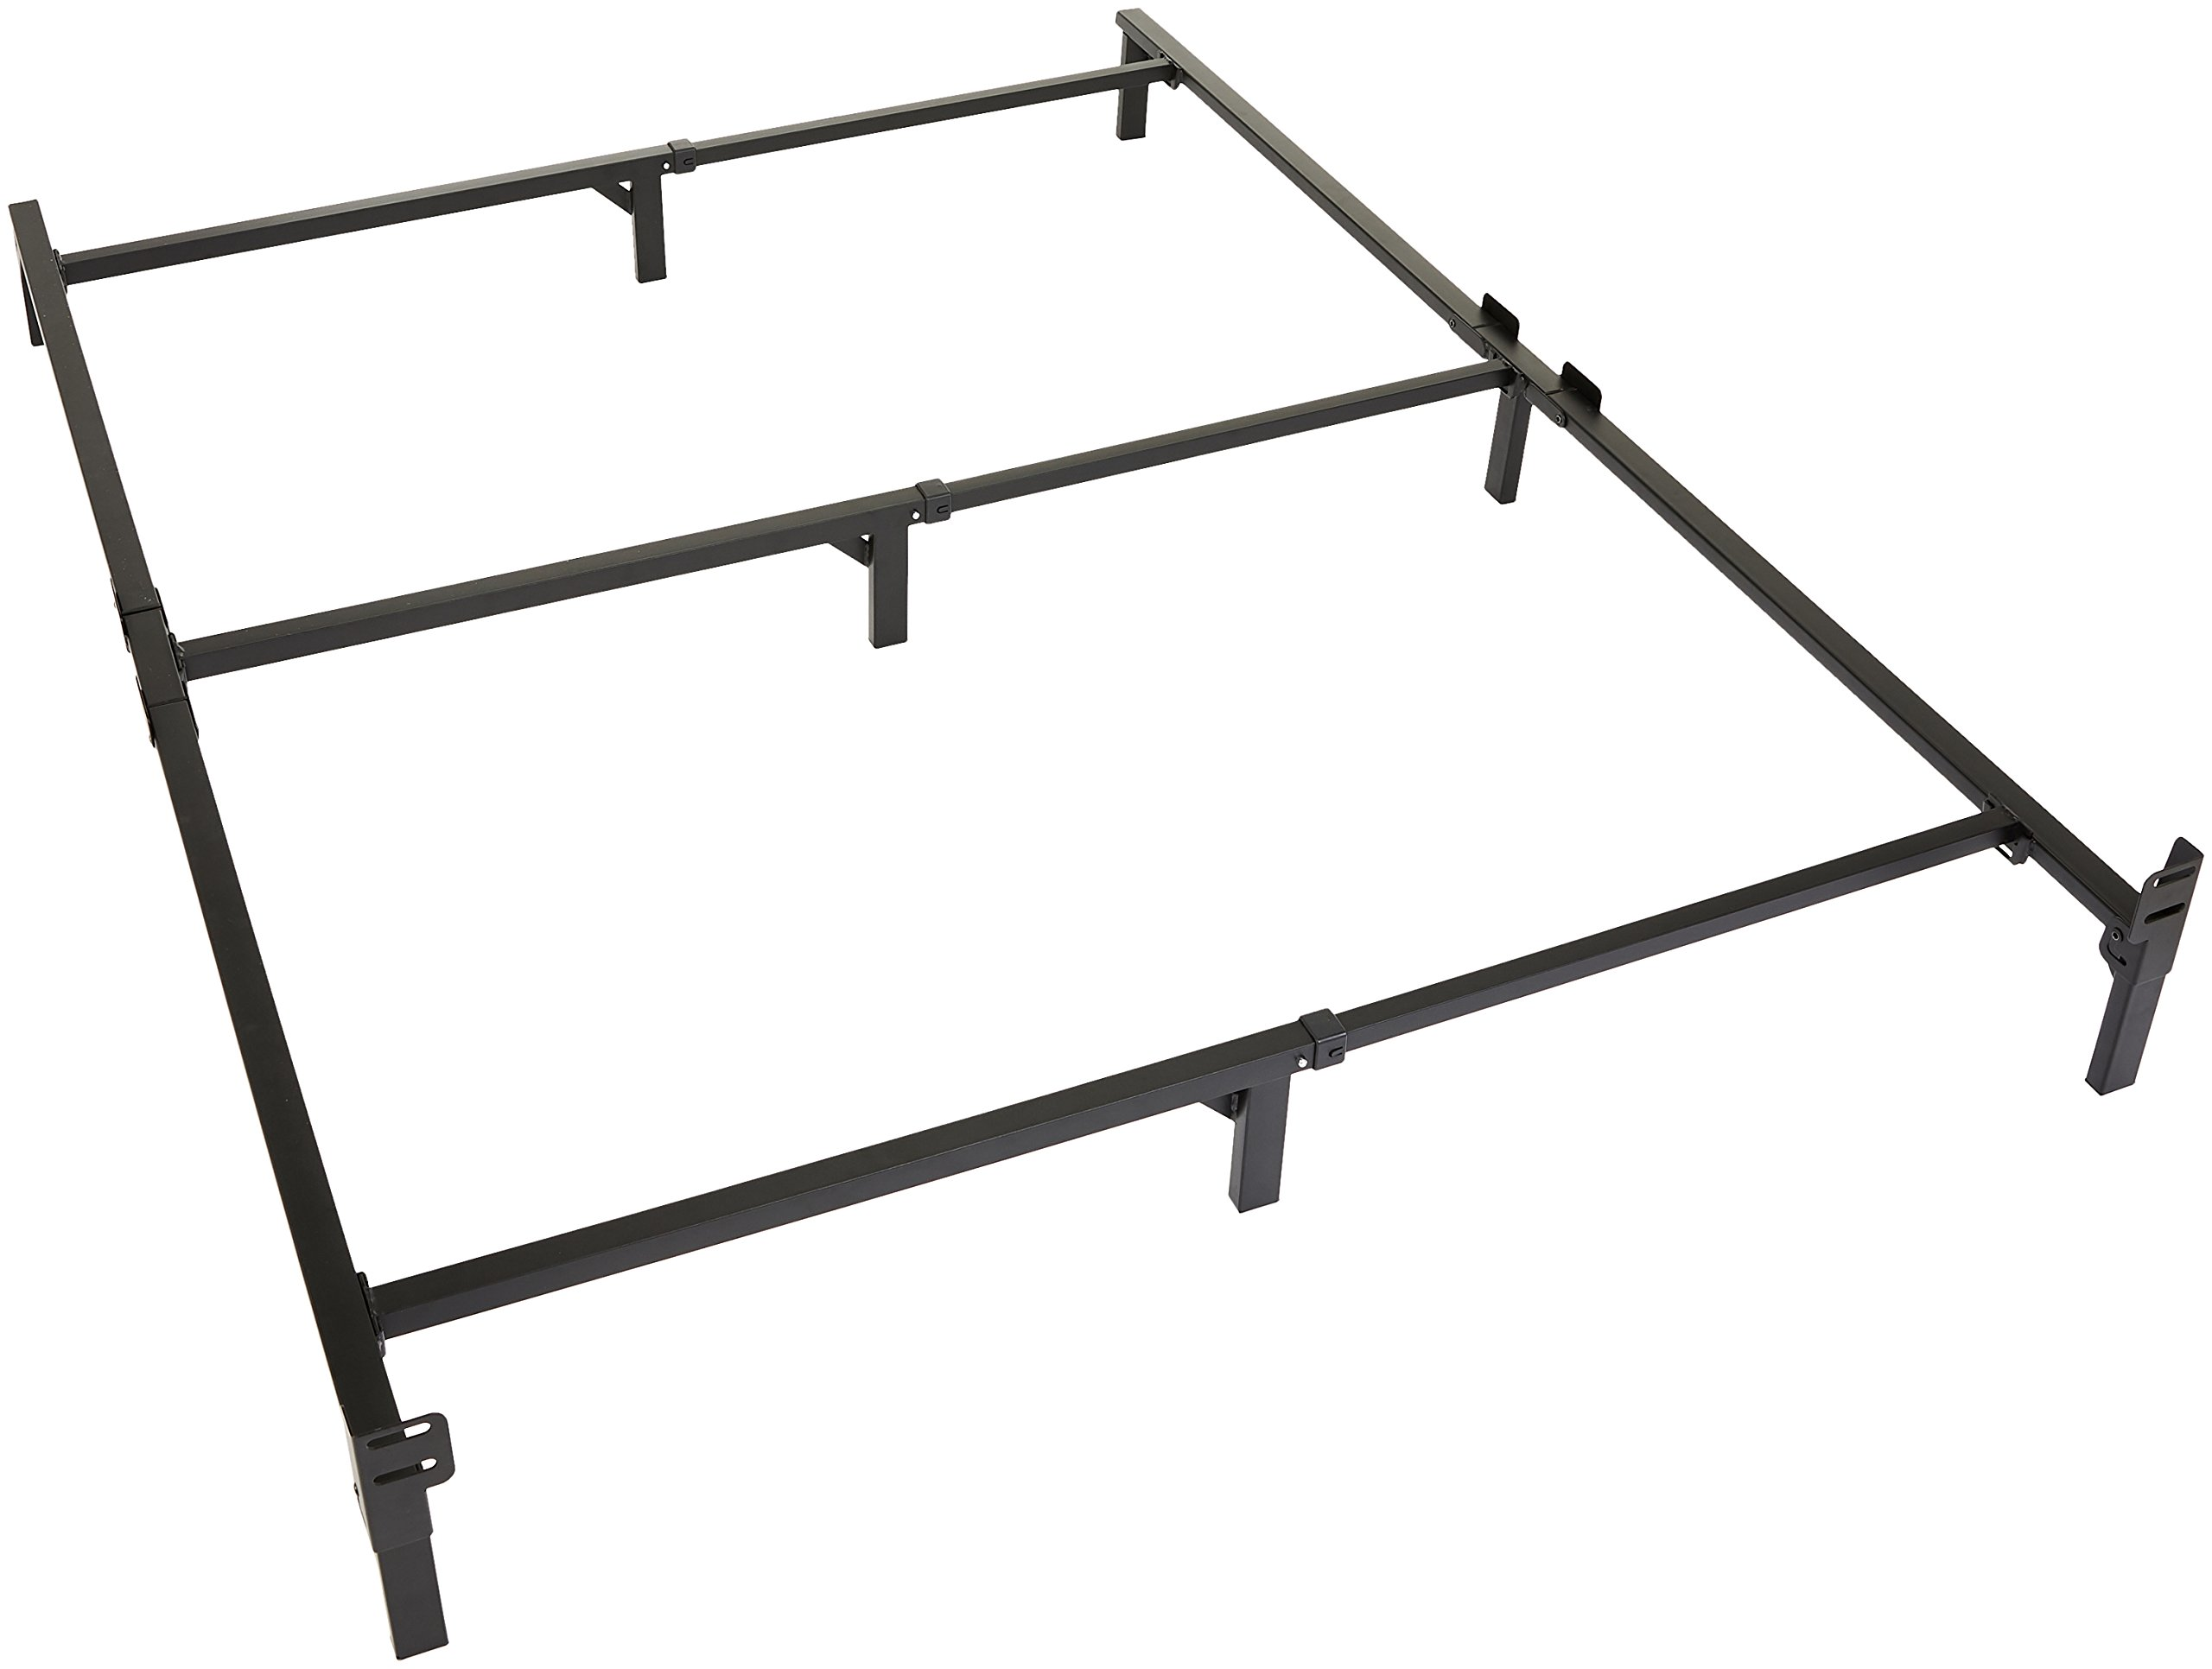 Amazon Basics 9-Leg Support Metal Bed Frame - Strong Support for Box Spring and Mattress Set - Full Size Bed by AmazonBasics